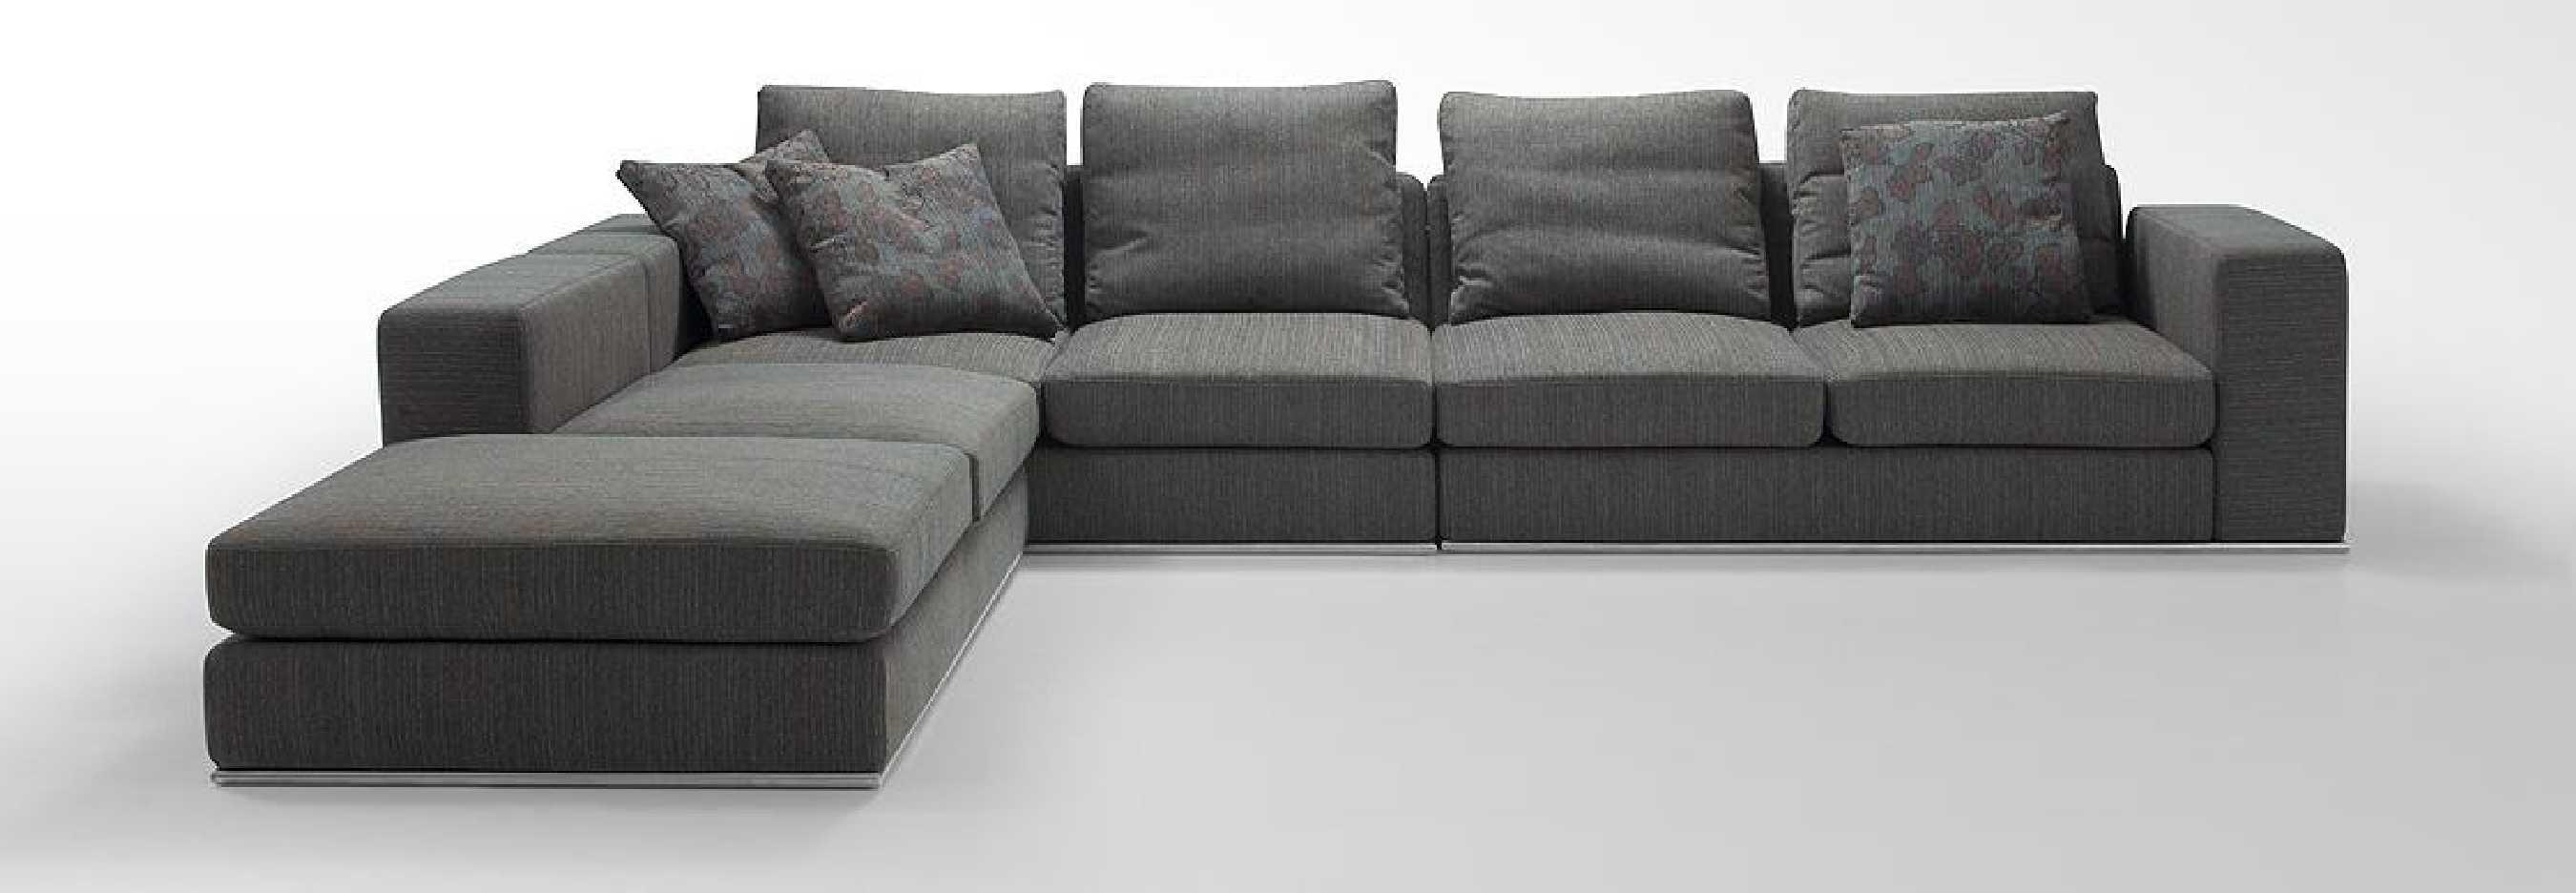 Modern L Shaped Sectional Sofa | Centerfieldbar Regarding L Shaped Fabric Sofas (View 7 of 20)